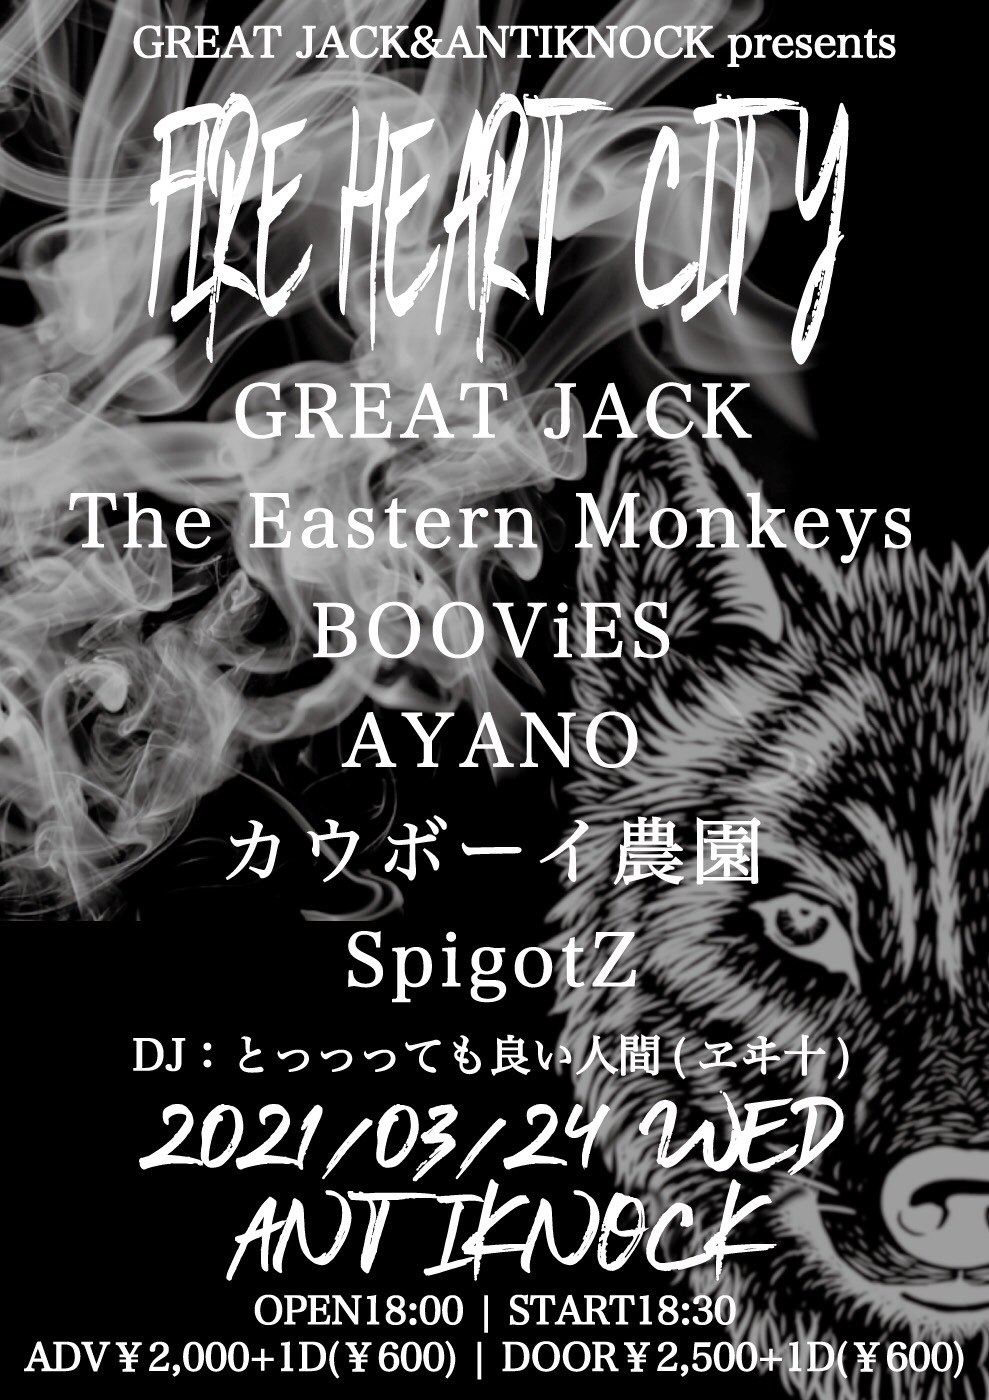 GREAT JACK&ANTIKNOCK presents 【FIRE HEART CITY】